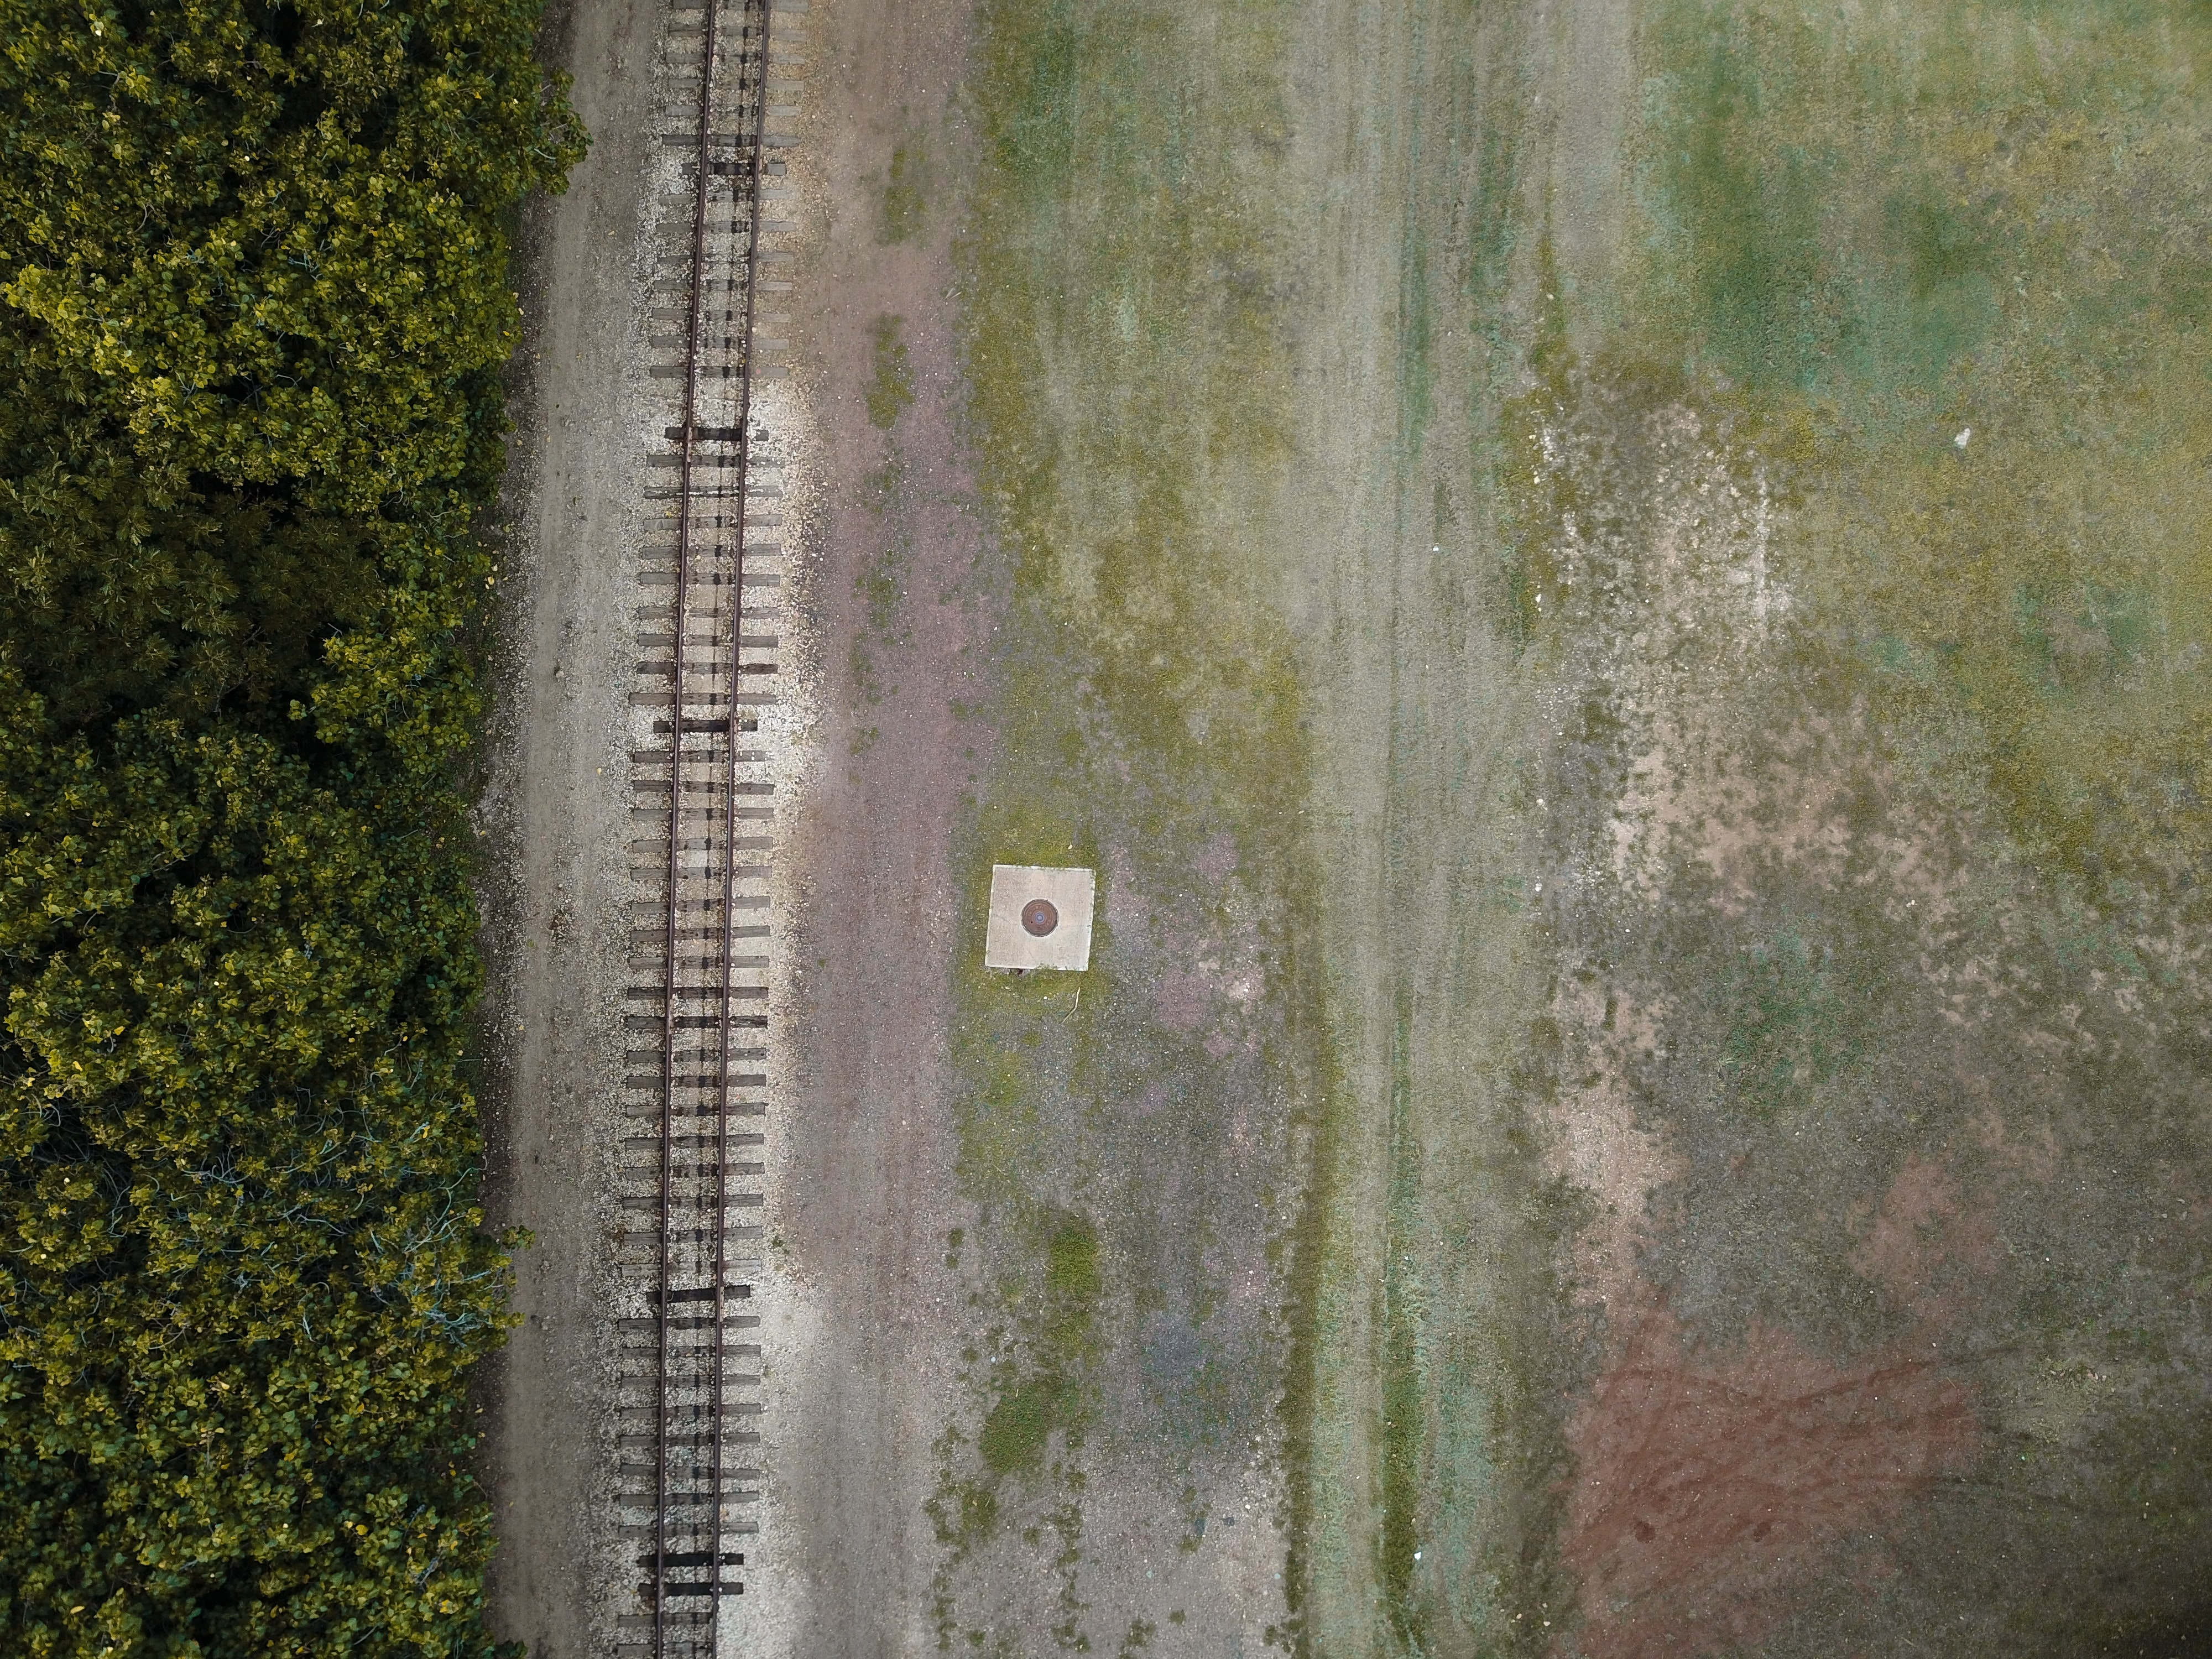 aerial view photography of train tracks